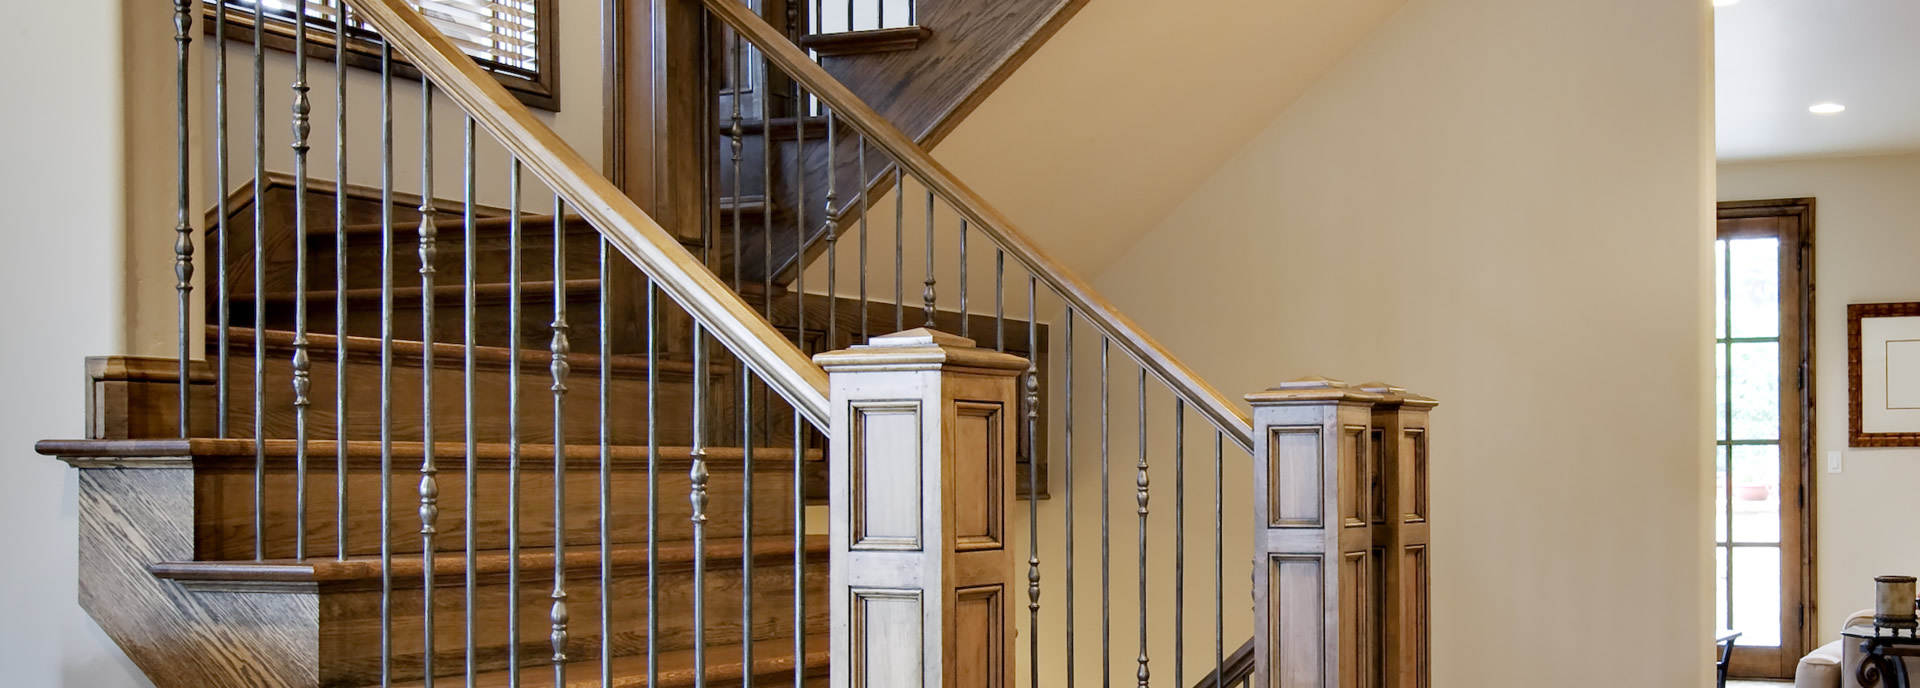 How We Create Our Custom Staircase: Part 2 Alpharetta, GA